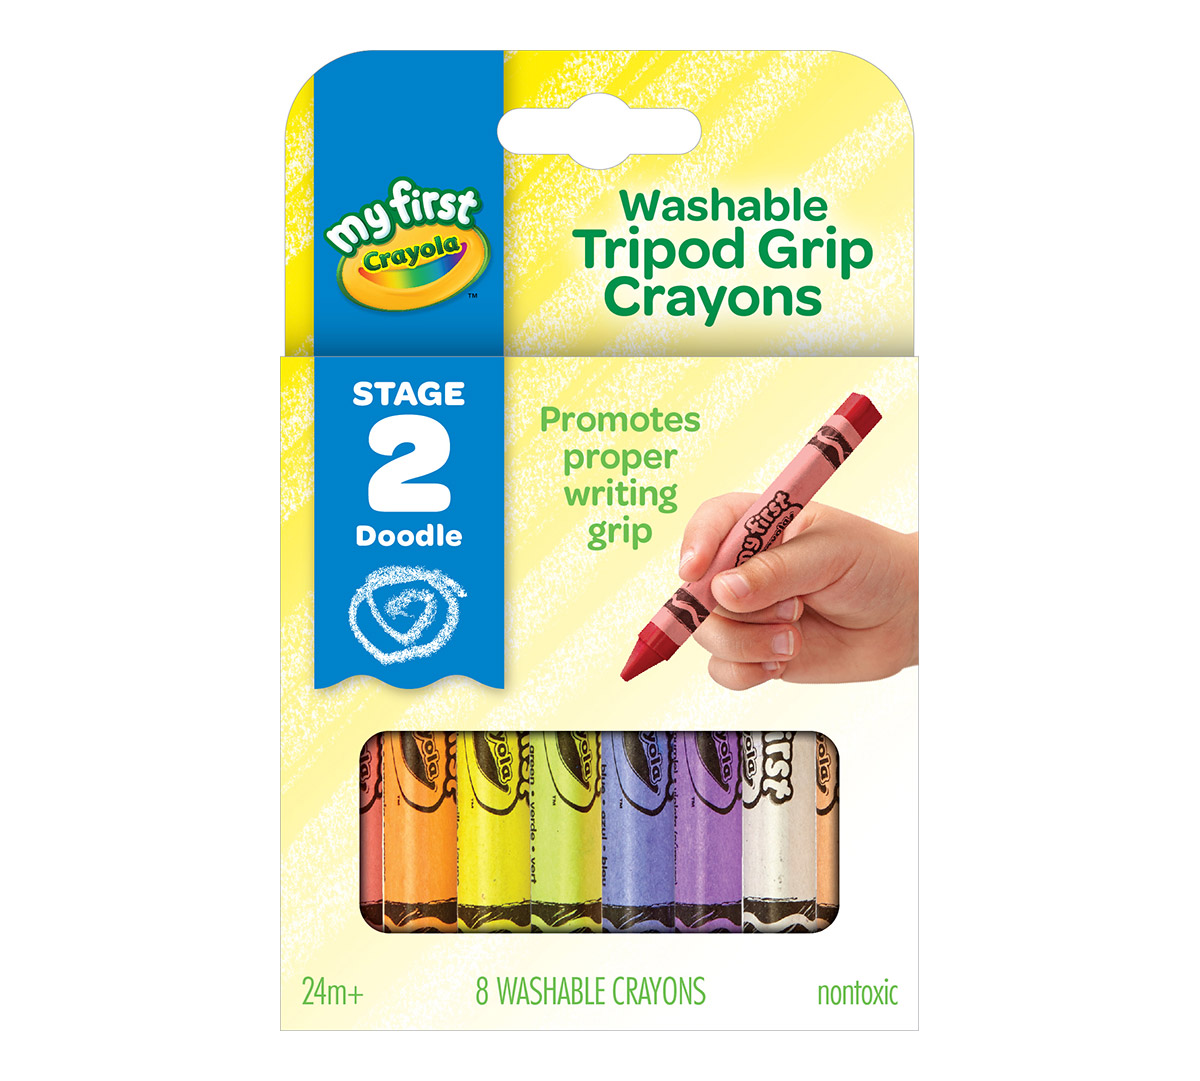 My First Crayola Washable Tripod Grip Crayons, 8 count